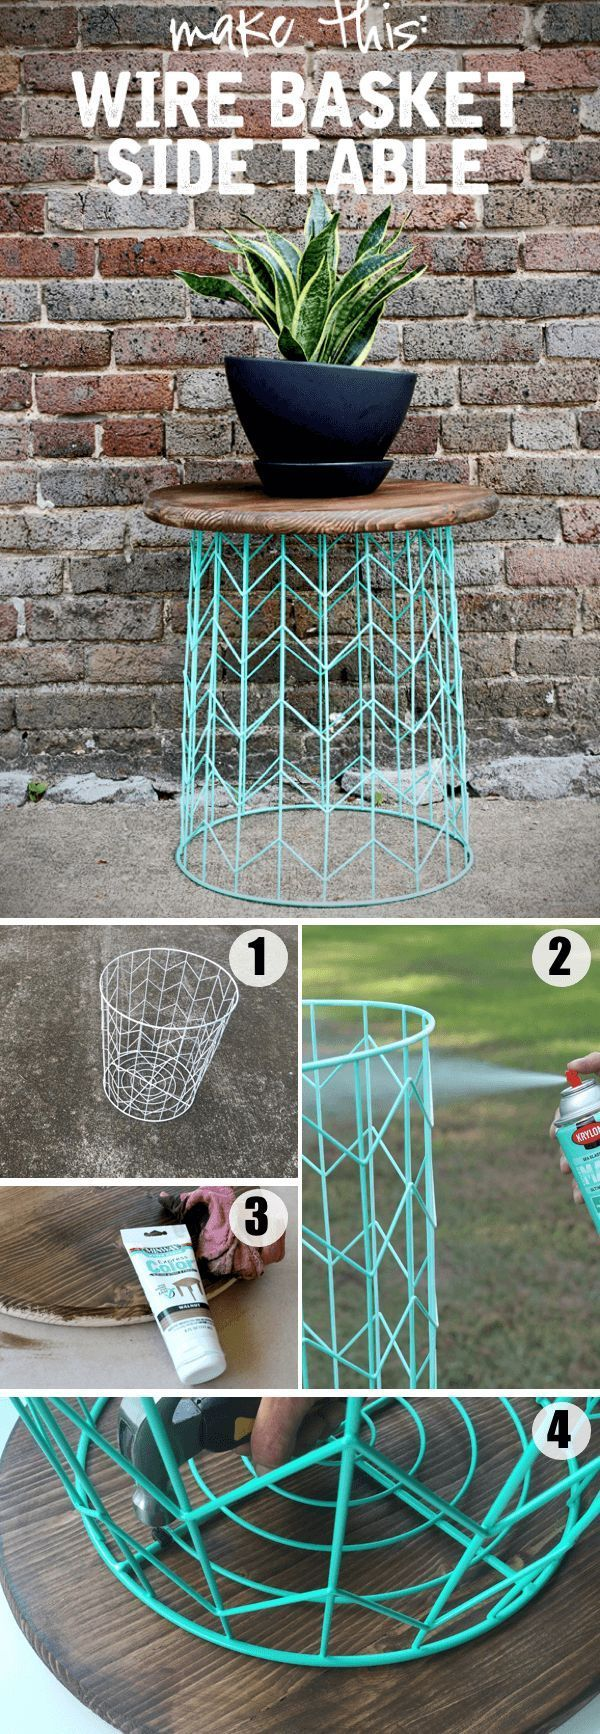 Wire Basket Side Table // This really simple and small table doesn't take much effort to build.